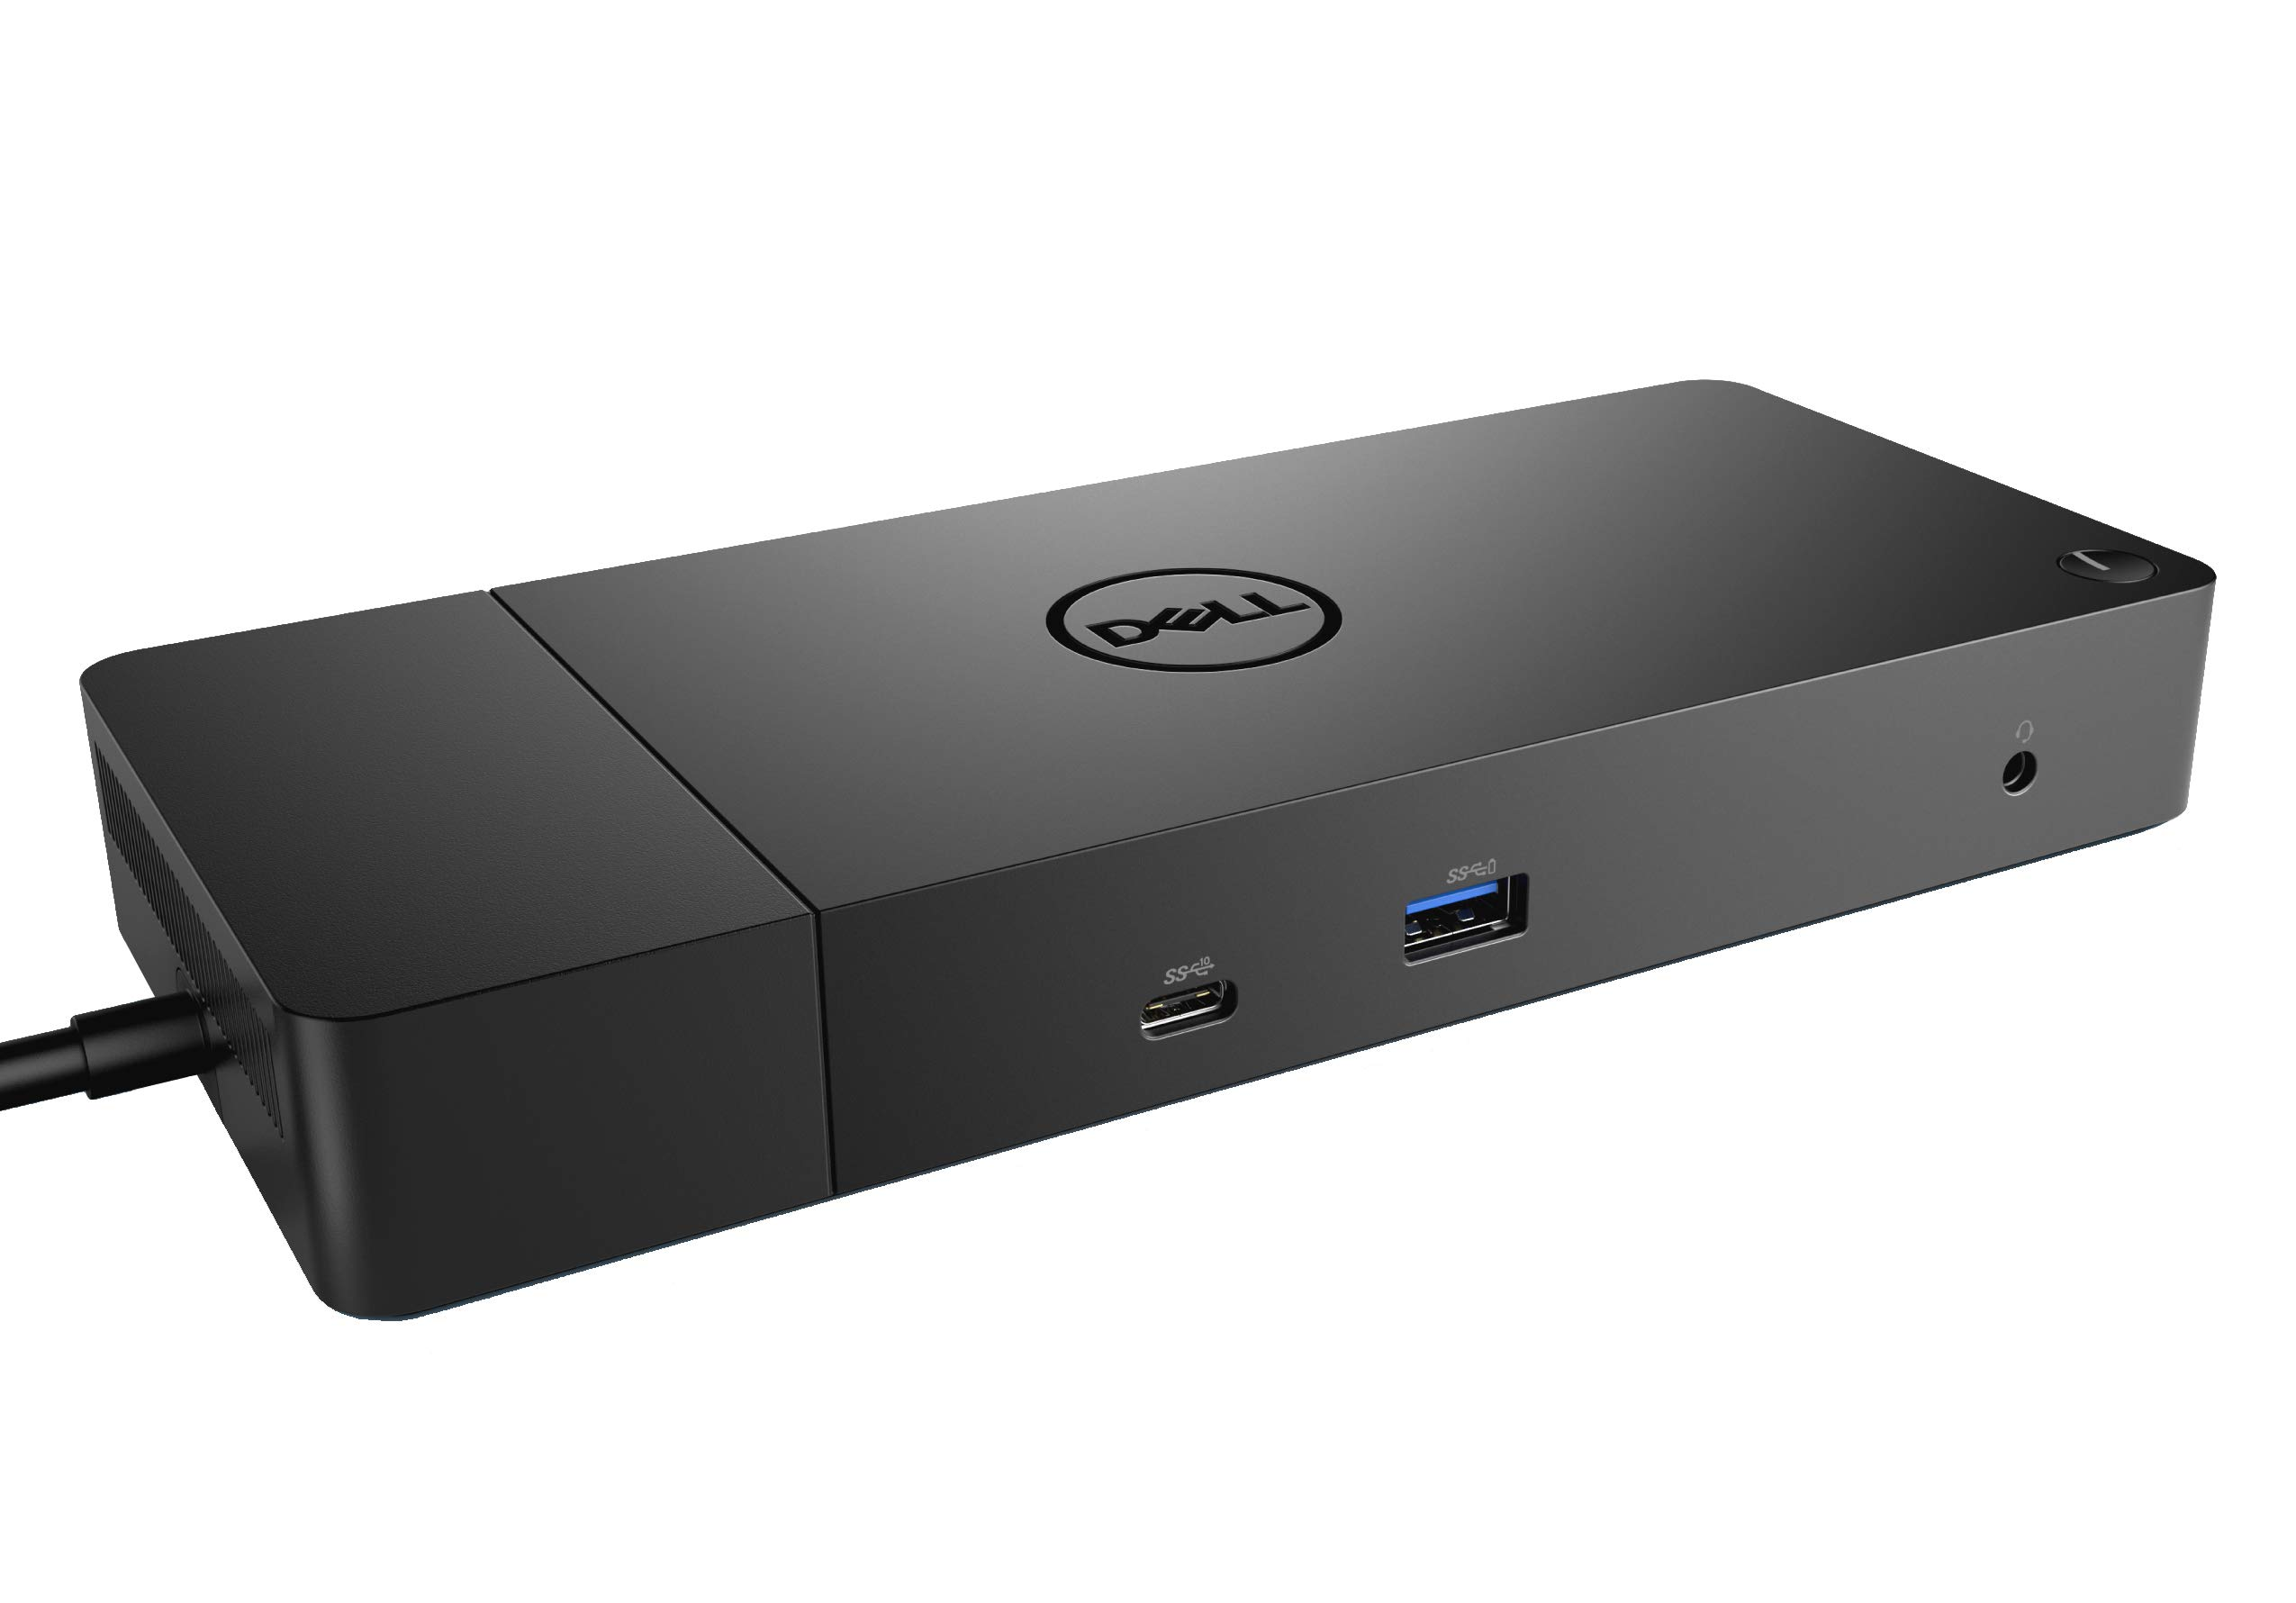 Dell Docking Station Delivery DisplayPort